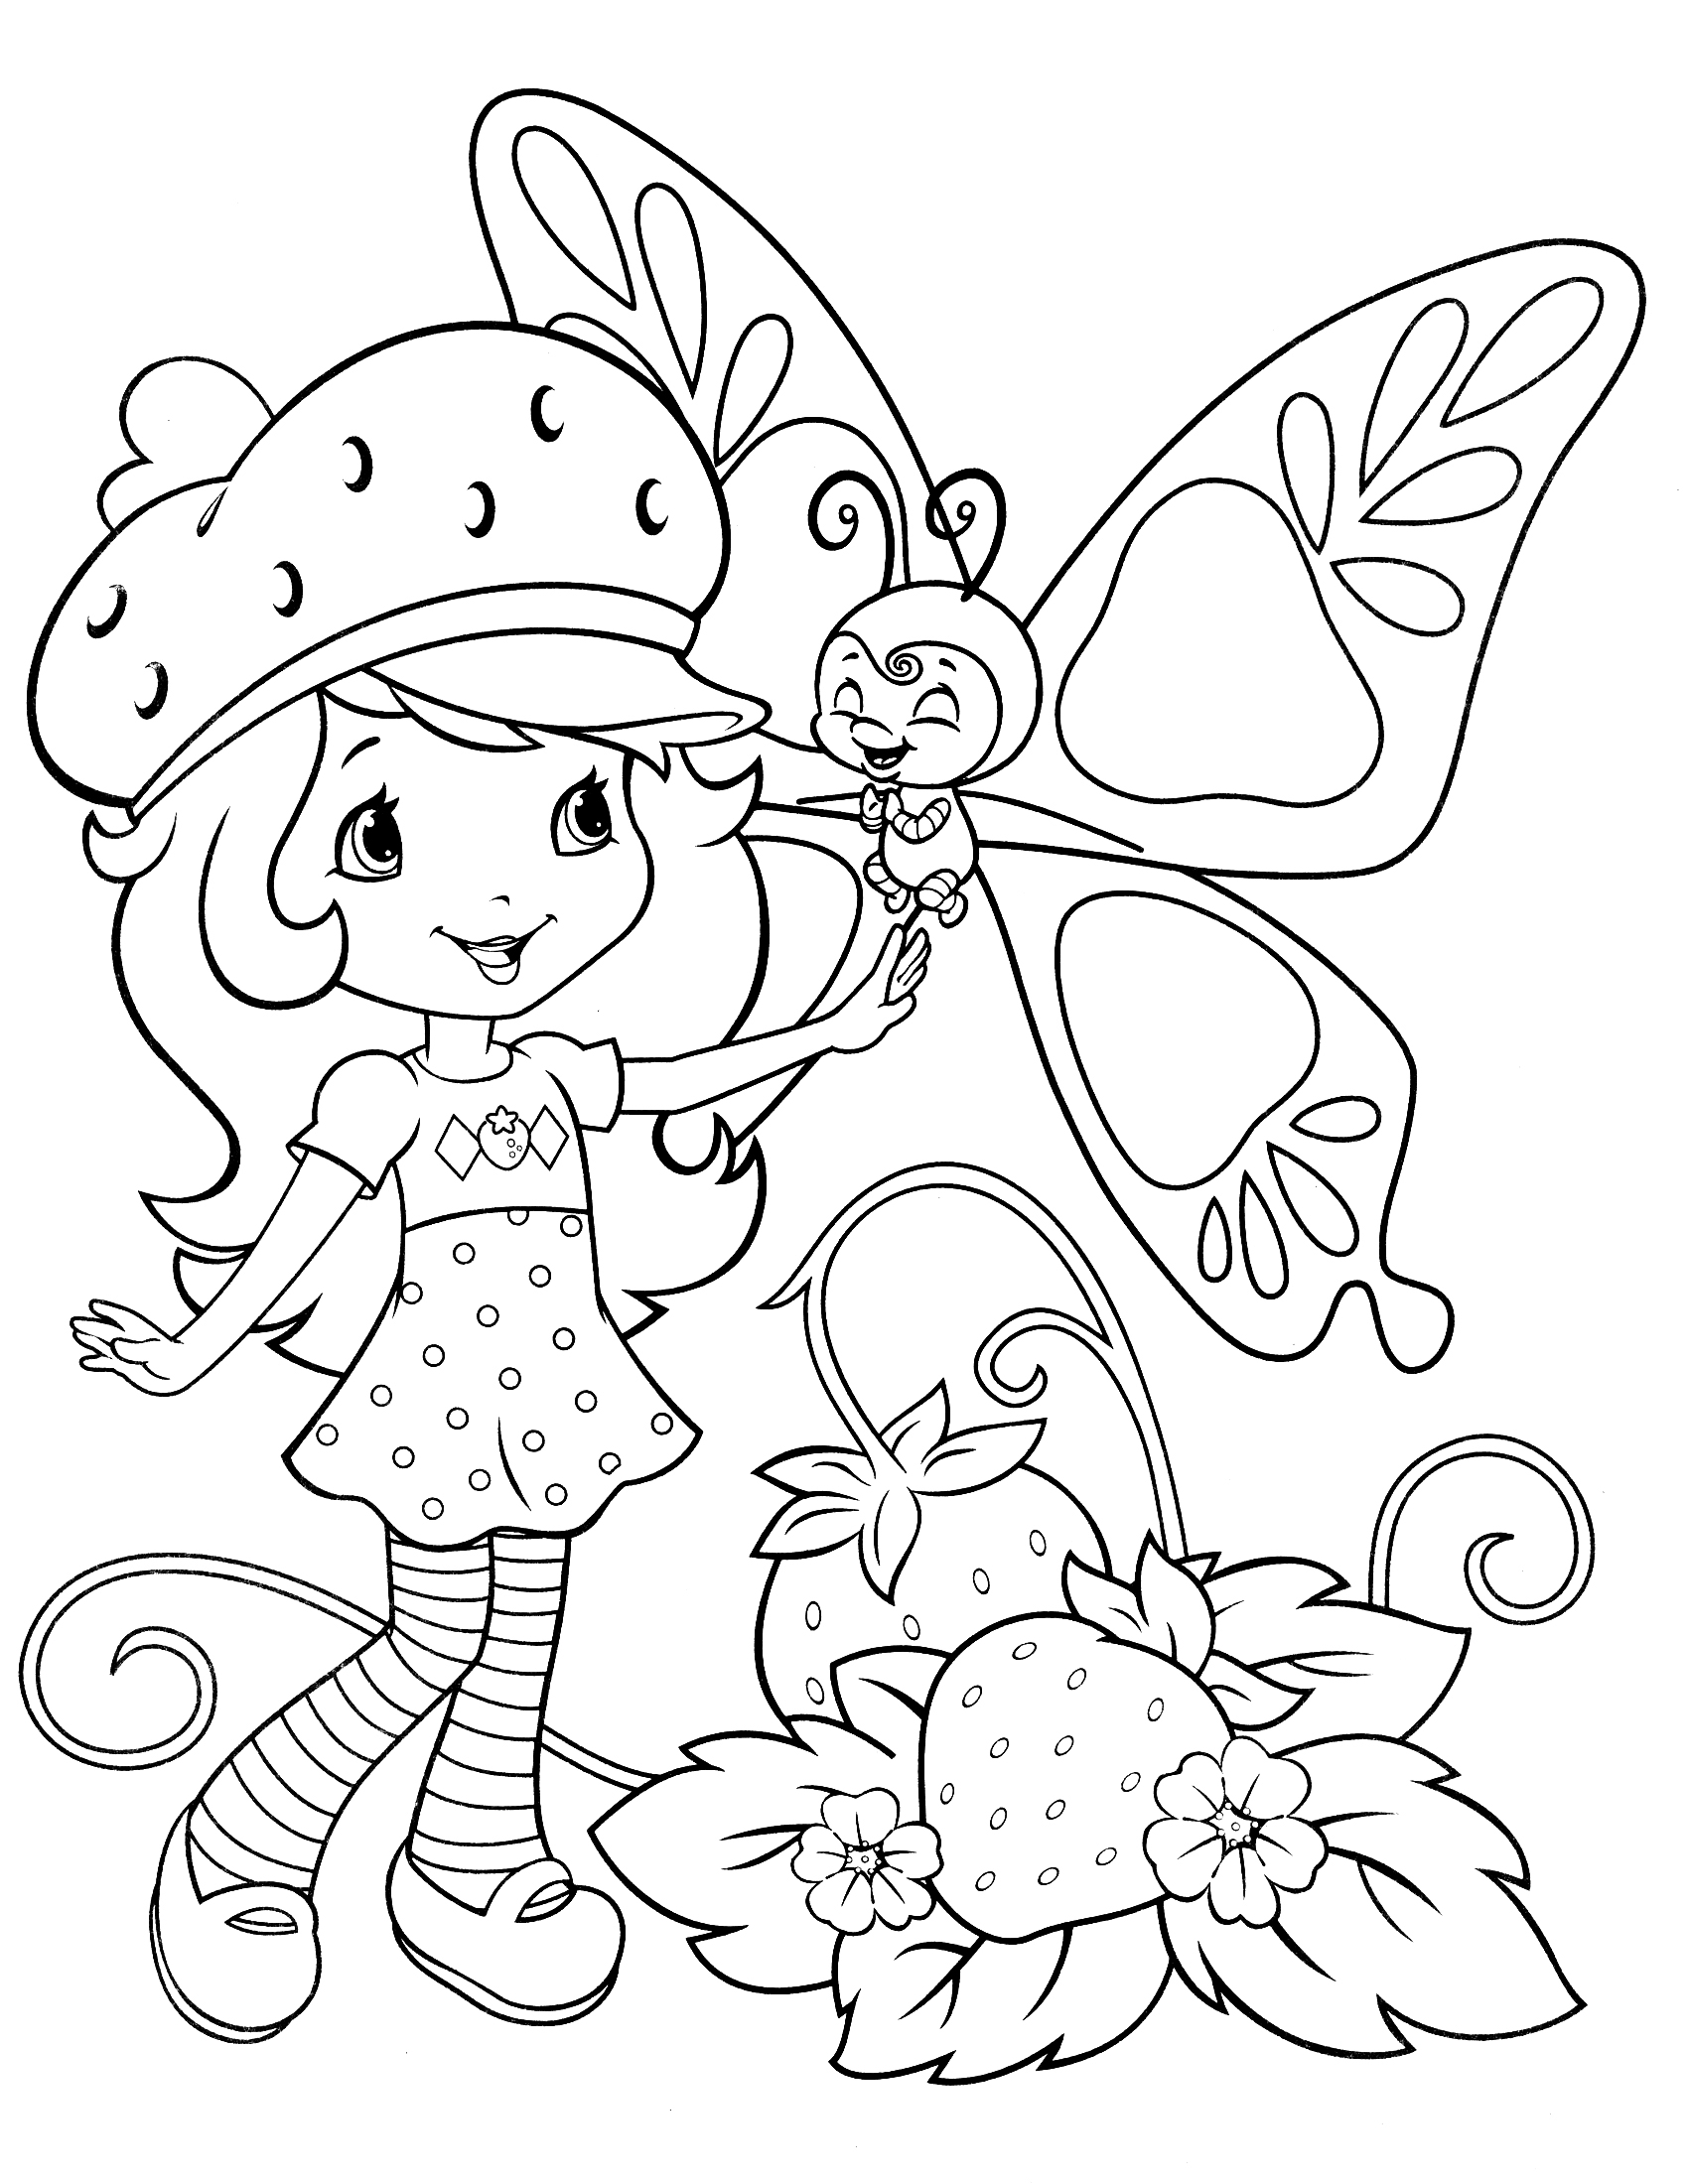 cheer coloring pages - printable strawberry shortcake coloring pages